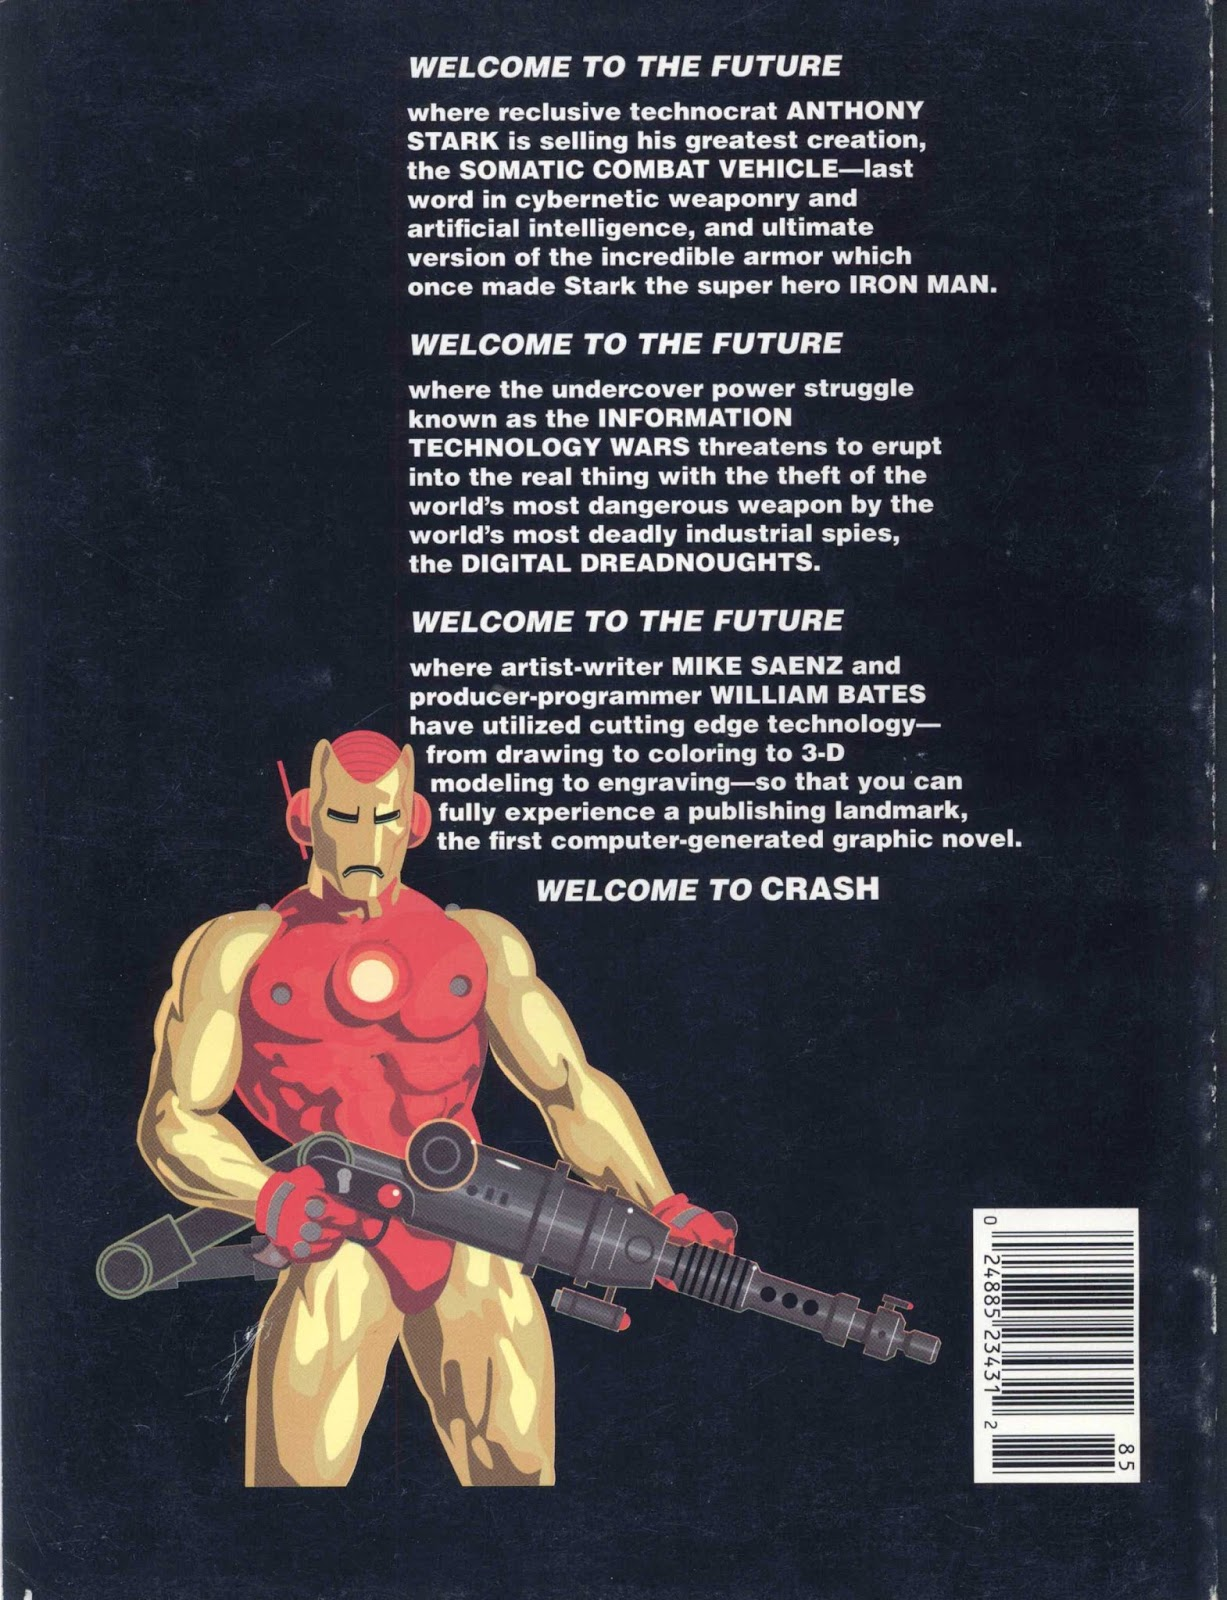 the porpor books blog sf and fantasy books 1968 1988 iron man crash 72 pp was published as a marvel graphic novel in 1988 along the 65 pp graphic novel there is a 7 page afterward featuring an essay from